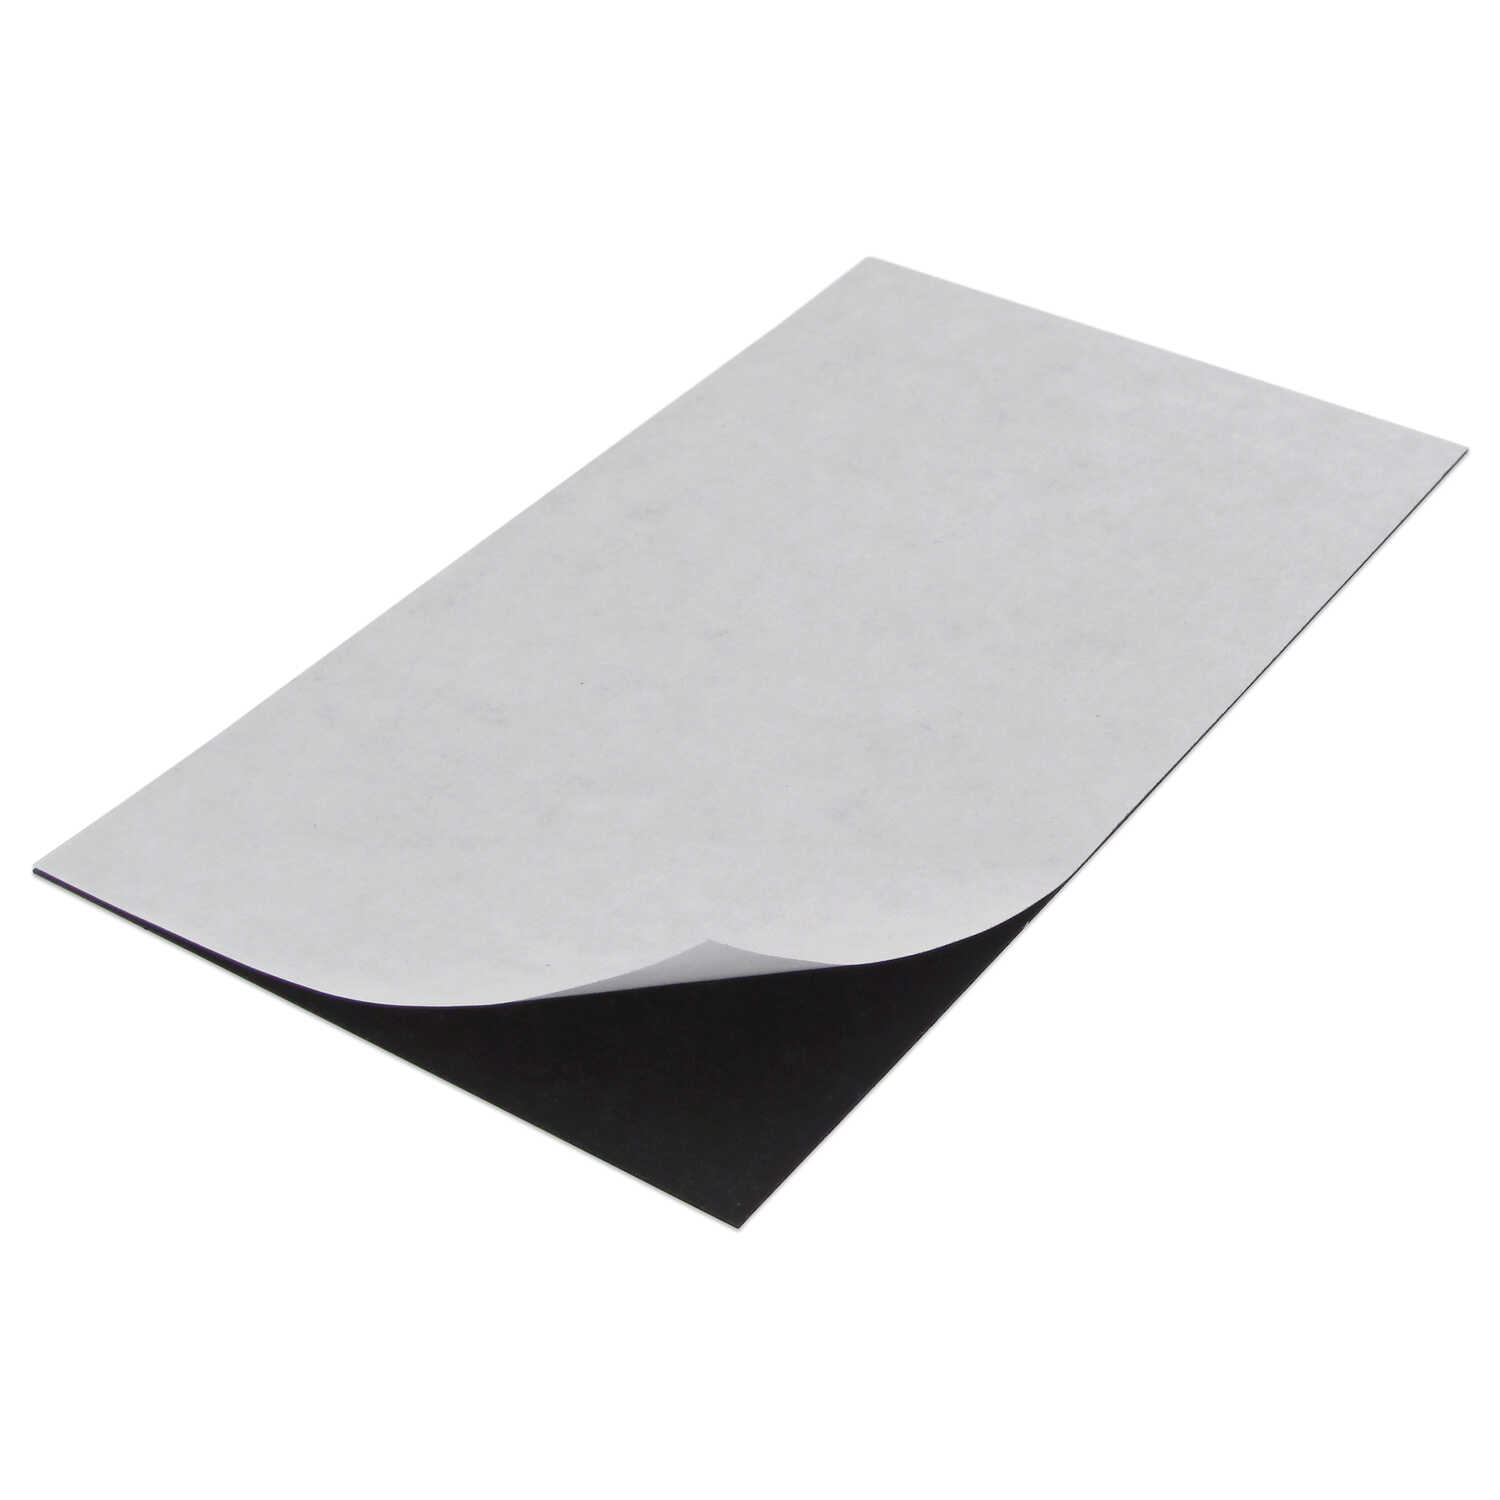 Master Magnetics  8 in. Ferrite Powder/Rubber Polymer Resin  Sheet  Magnetic Sheet  0.6 MGOe Black